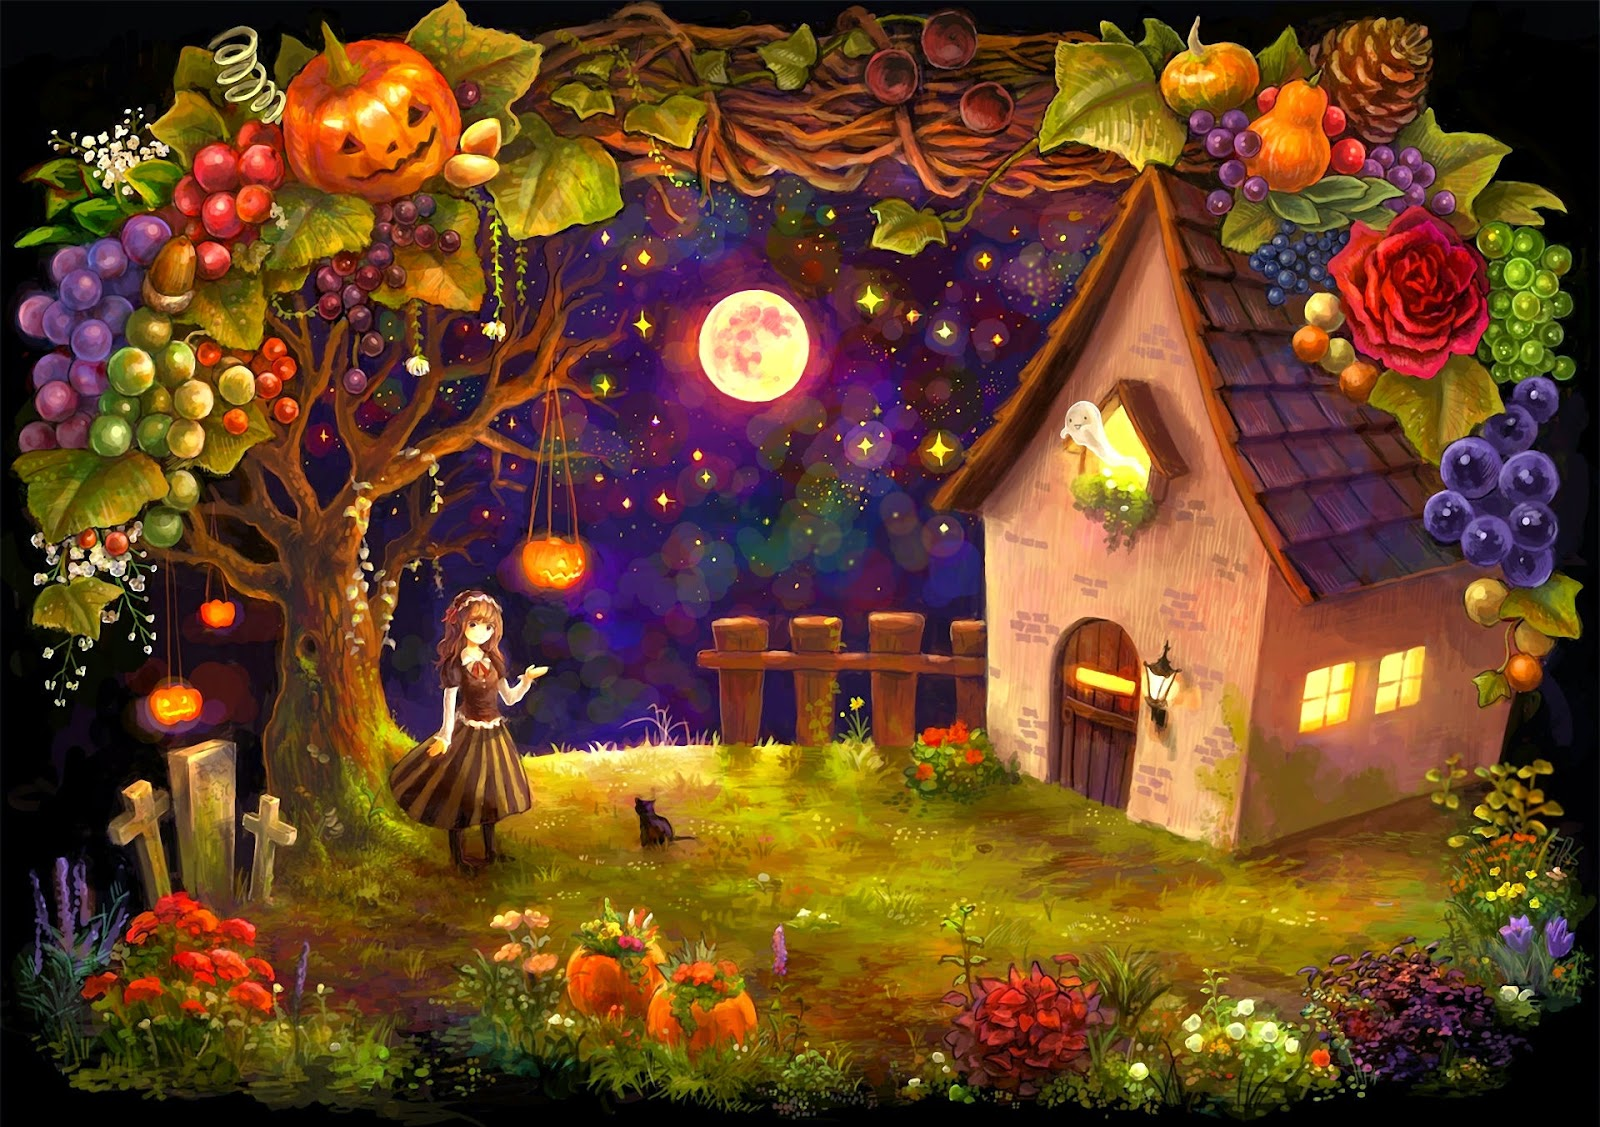 Dark Theme Wallpaper Hd Quote Happy Halloween Day Holiday Wishes Text Pictures Card For